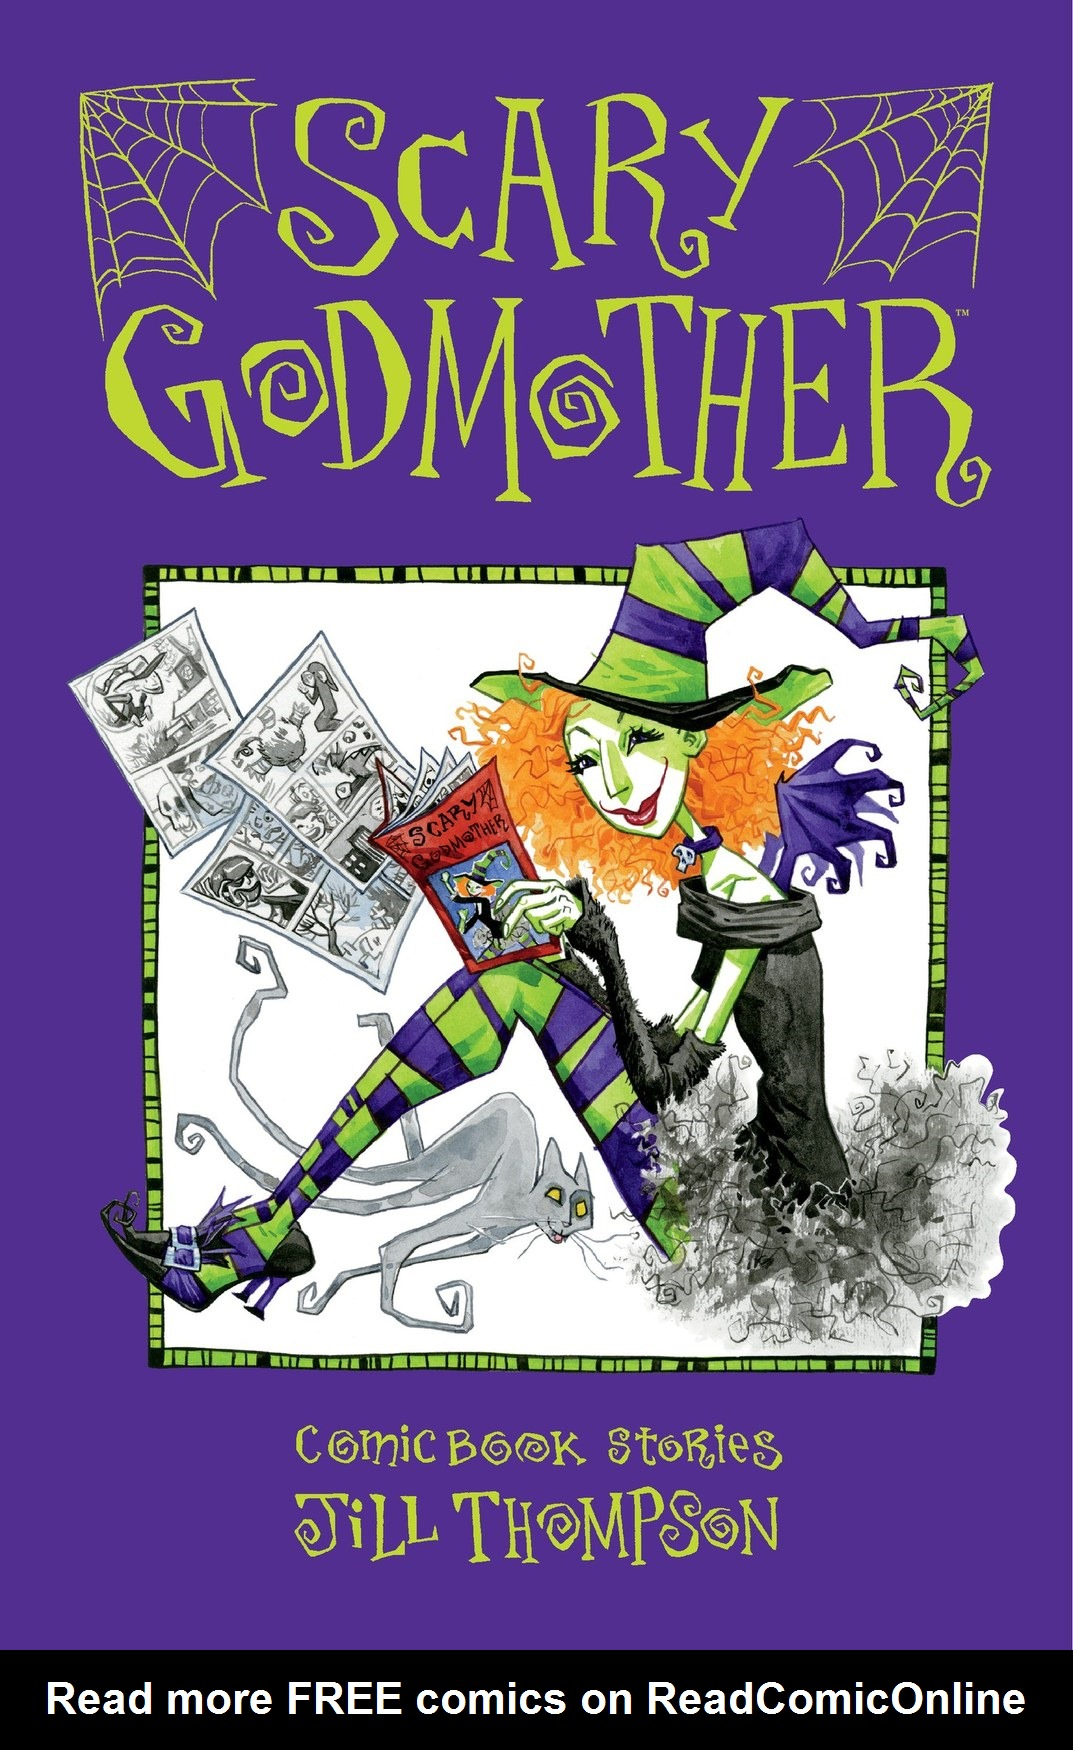 Read online Scary Godmother Comic Book Stories comic -  Issue # TPB - 1